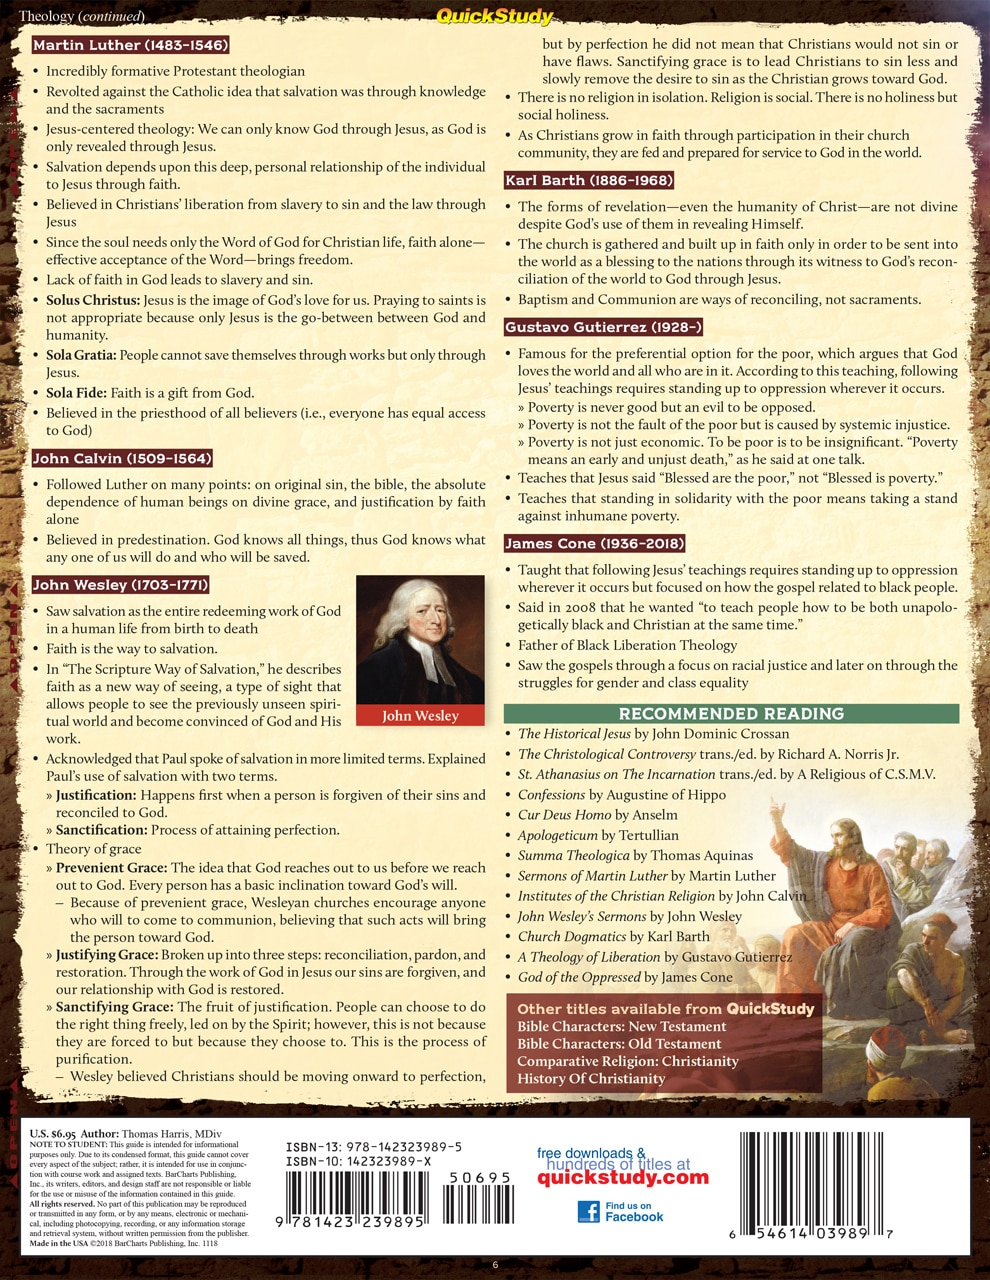 Quick Study QuickStudy Jesus: Historical & Biblical Laminated Study Guide BarCharts Publishing Religion Reference Back Image